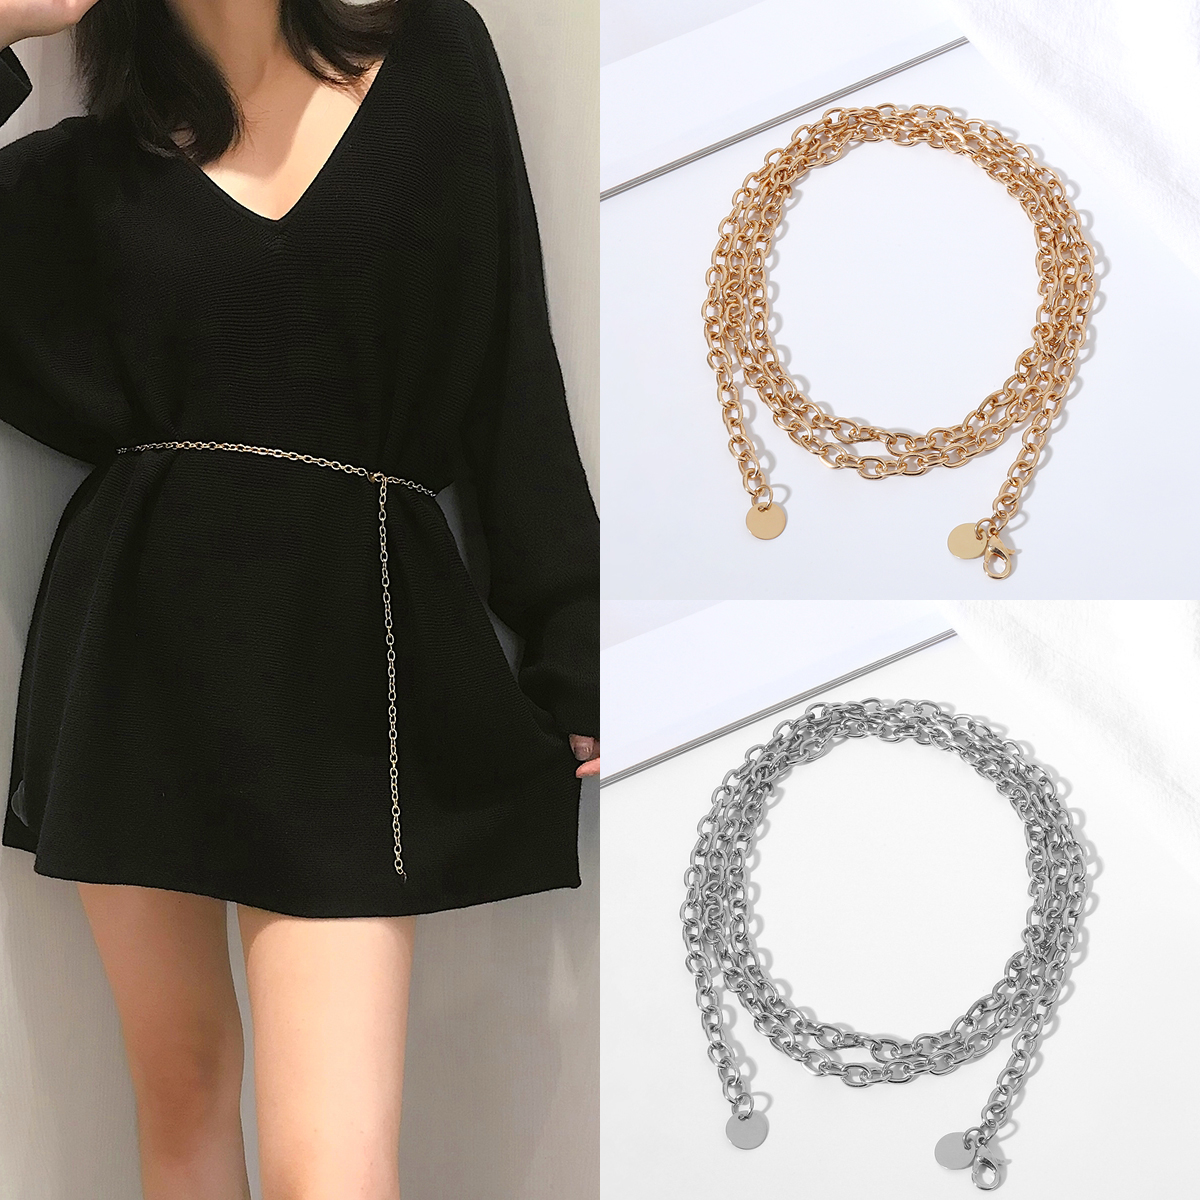 New Fashion Vintage Metal Golden Waist Chain Women Belts Luxury Designer Waistband Body Chain Belt